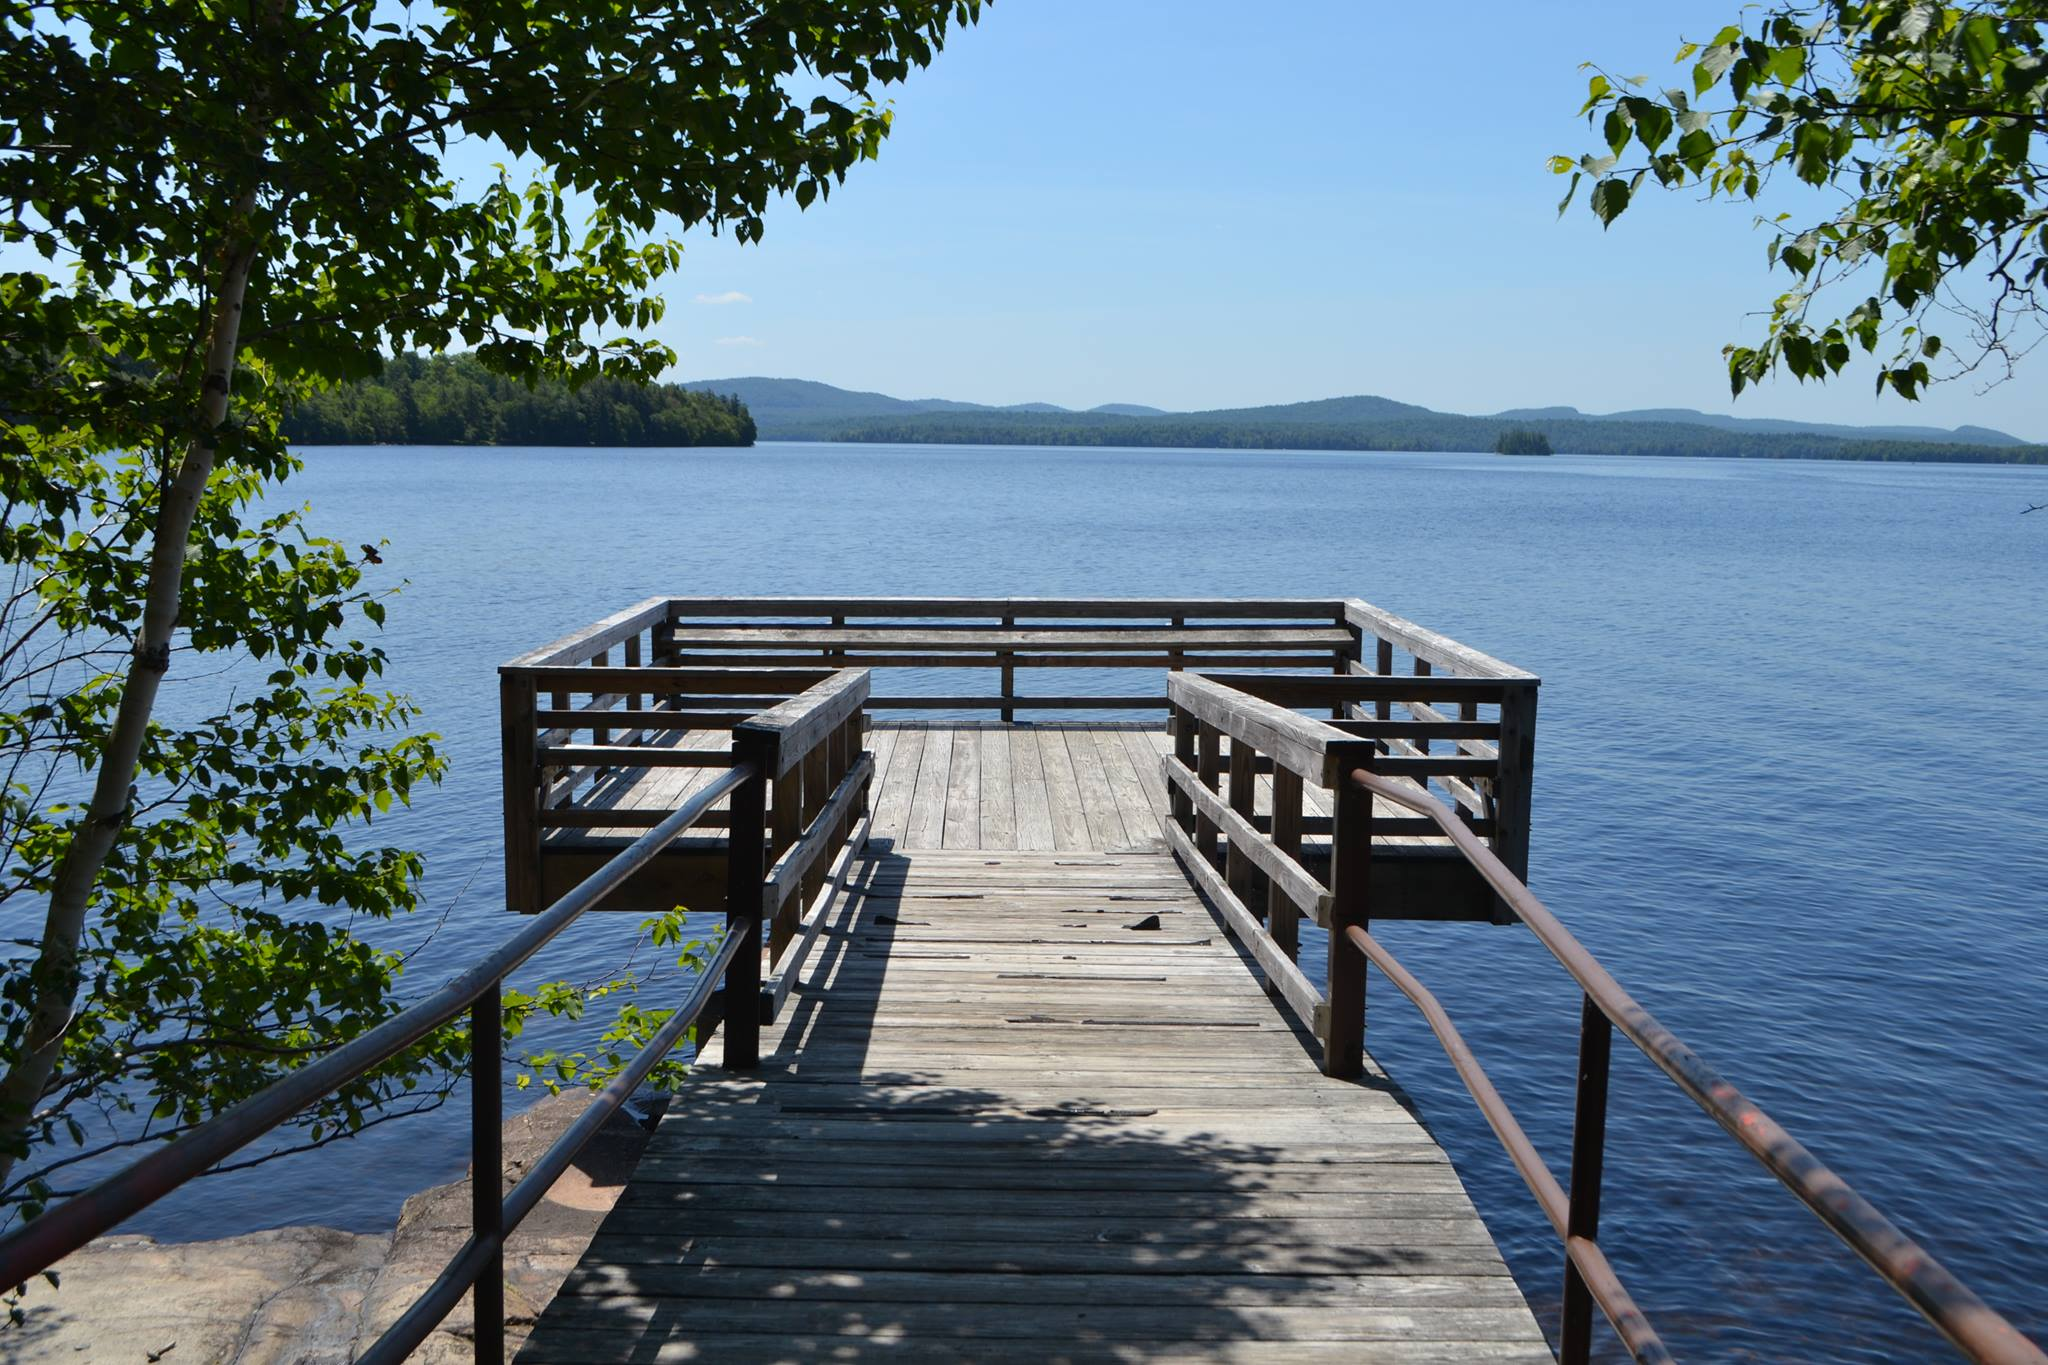 Fishing Pier at the State Campground